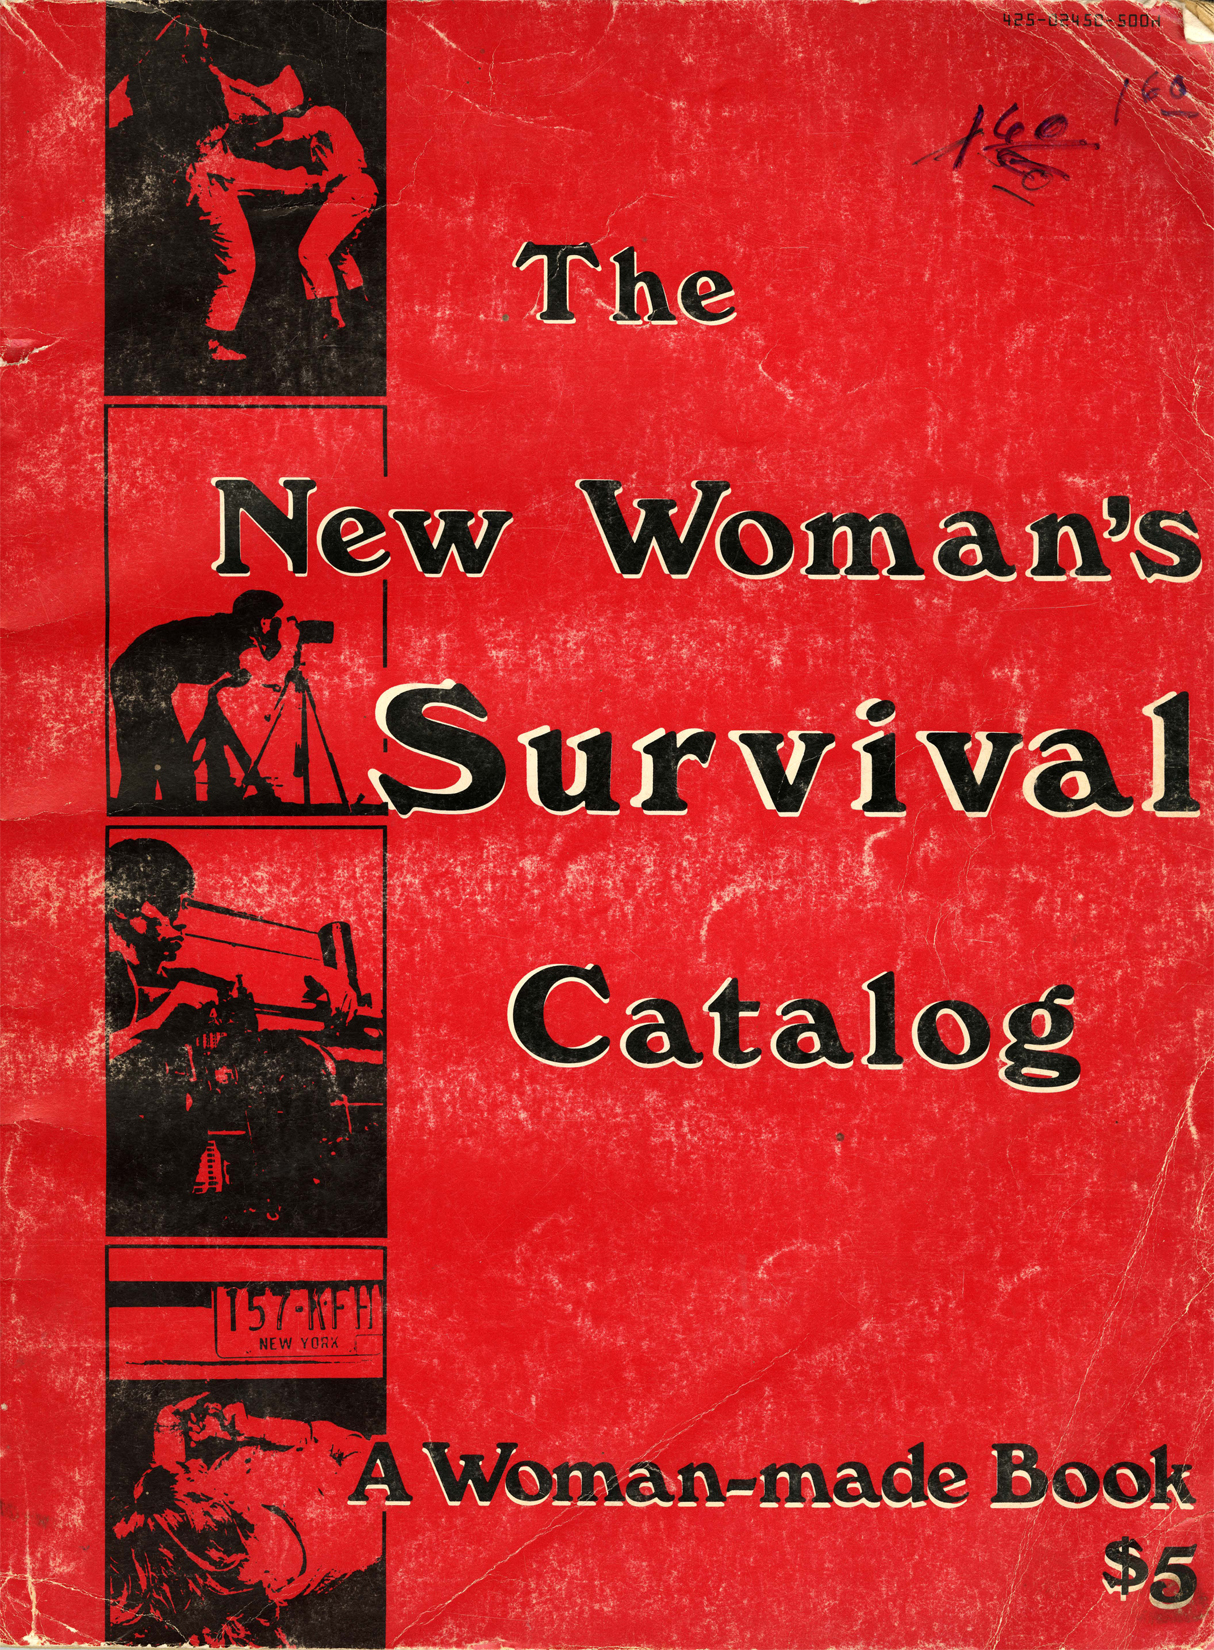 the new woman The new woman coined by henry james in the late 19th century to describe the growth in the number of feminist, educated, independent career women in europe and the us in the late 19th century the term new woman always referred to women who exercised control over their own lives be it person, social, or economic.